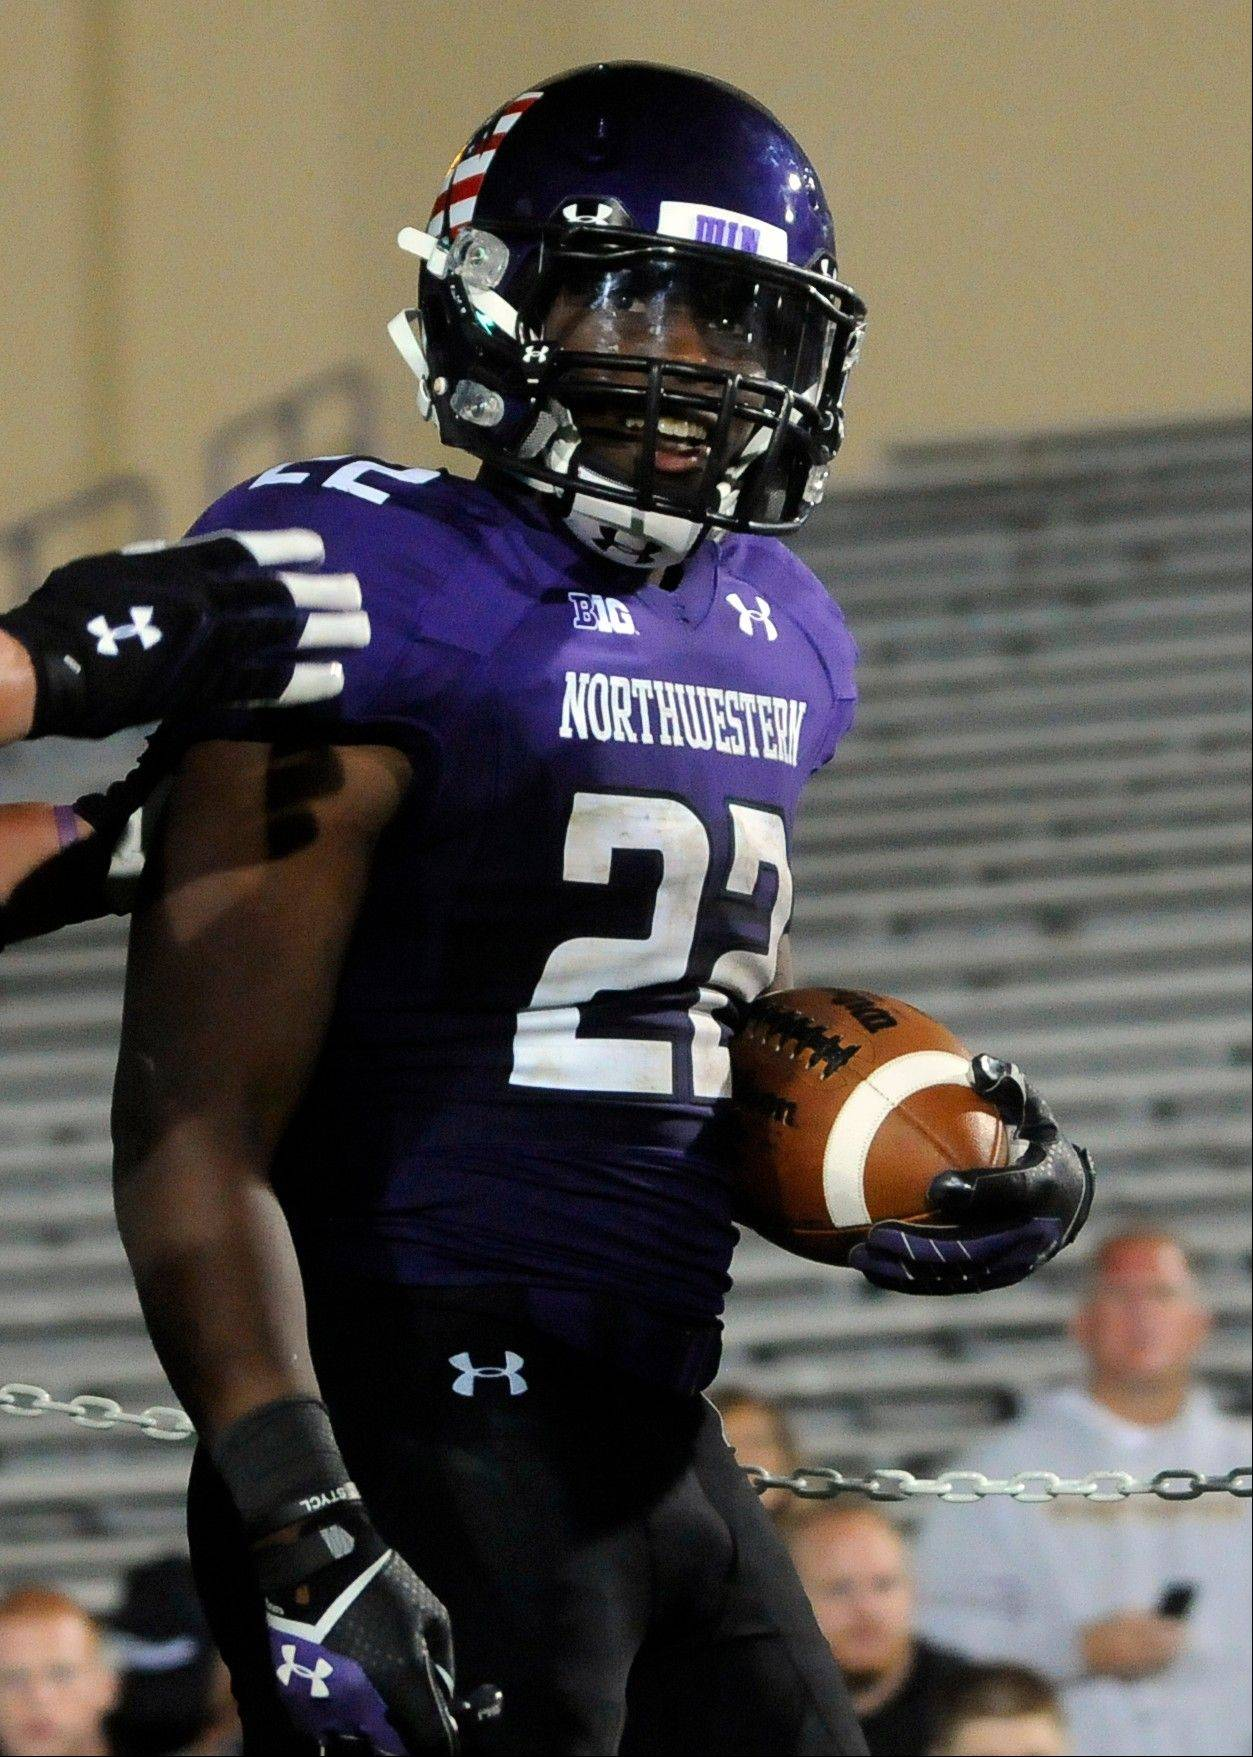 Northwestern's Treyvon Green (22) celebrates his touchdown against Western Michigan during the fourth quarter of an NCAA college football game in Evanston, Ill., Saturday, Sept. 14, 2013.